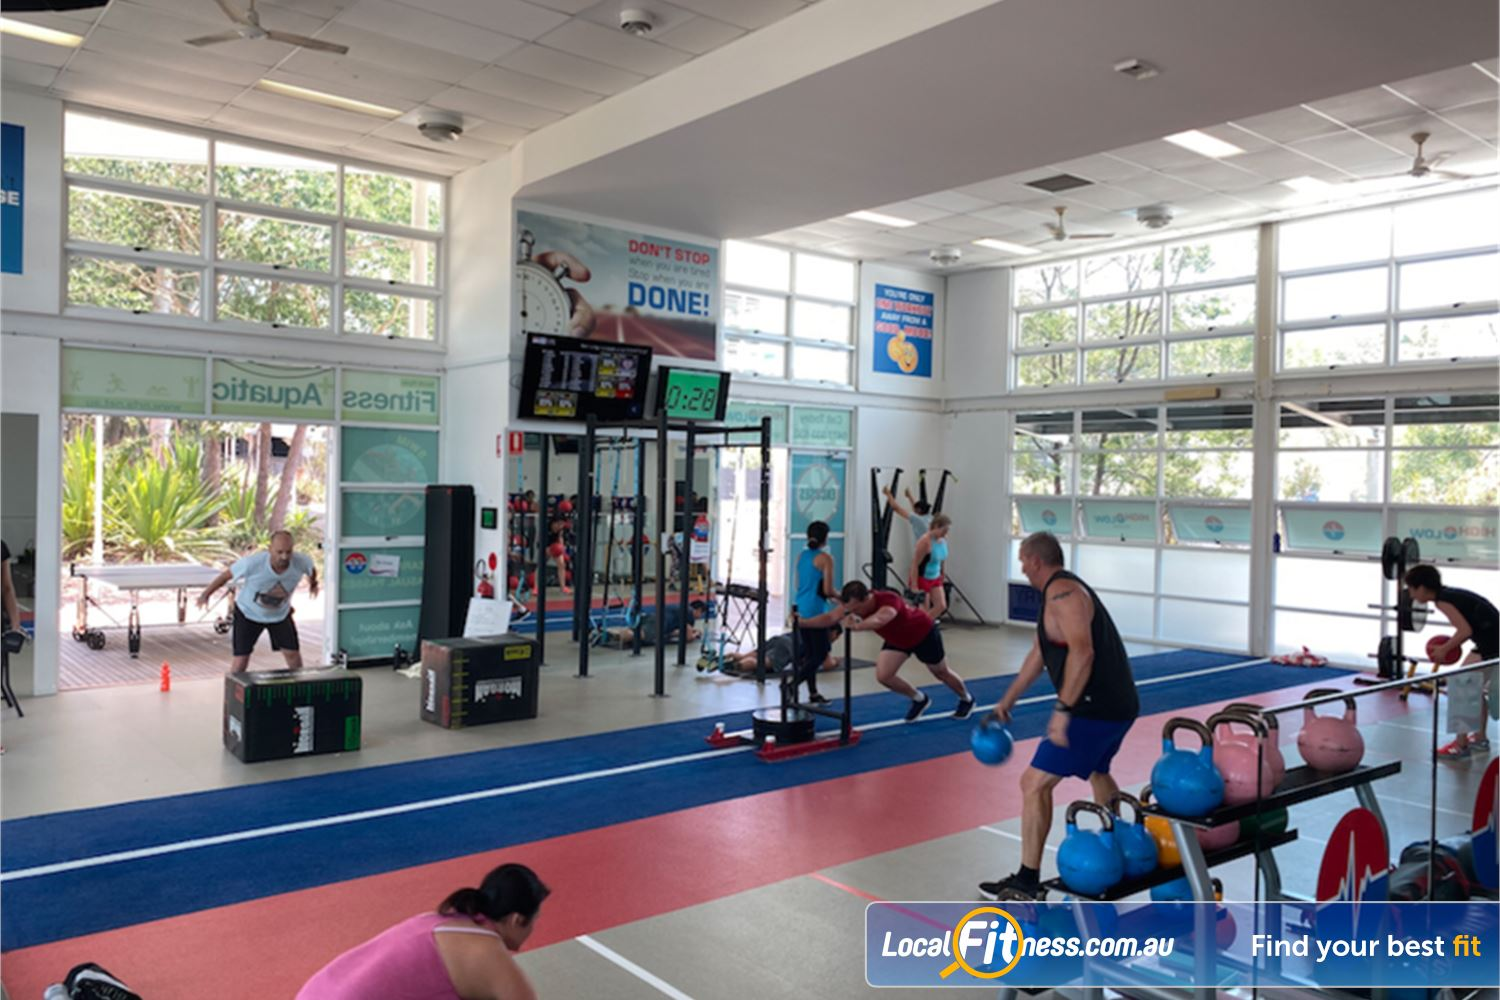 North Ryde Fitness & Aquatic North Ryde The dedicated North Ryde functional training studio.